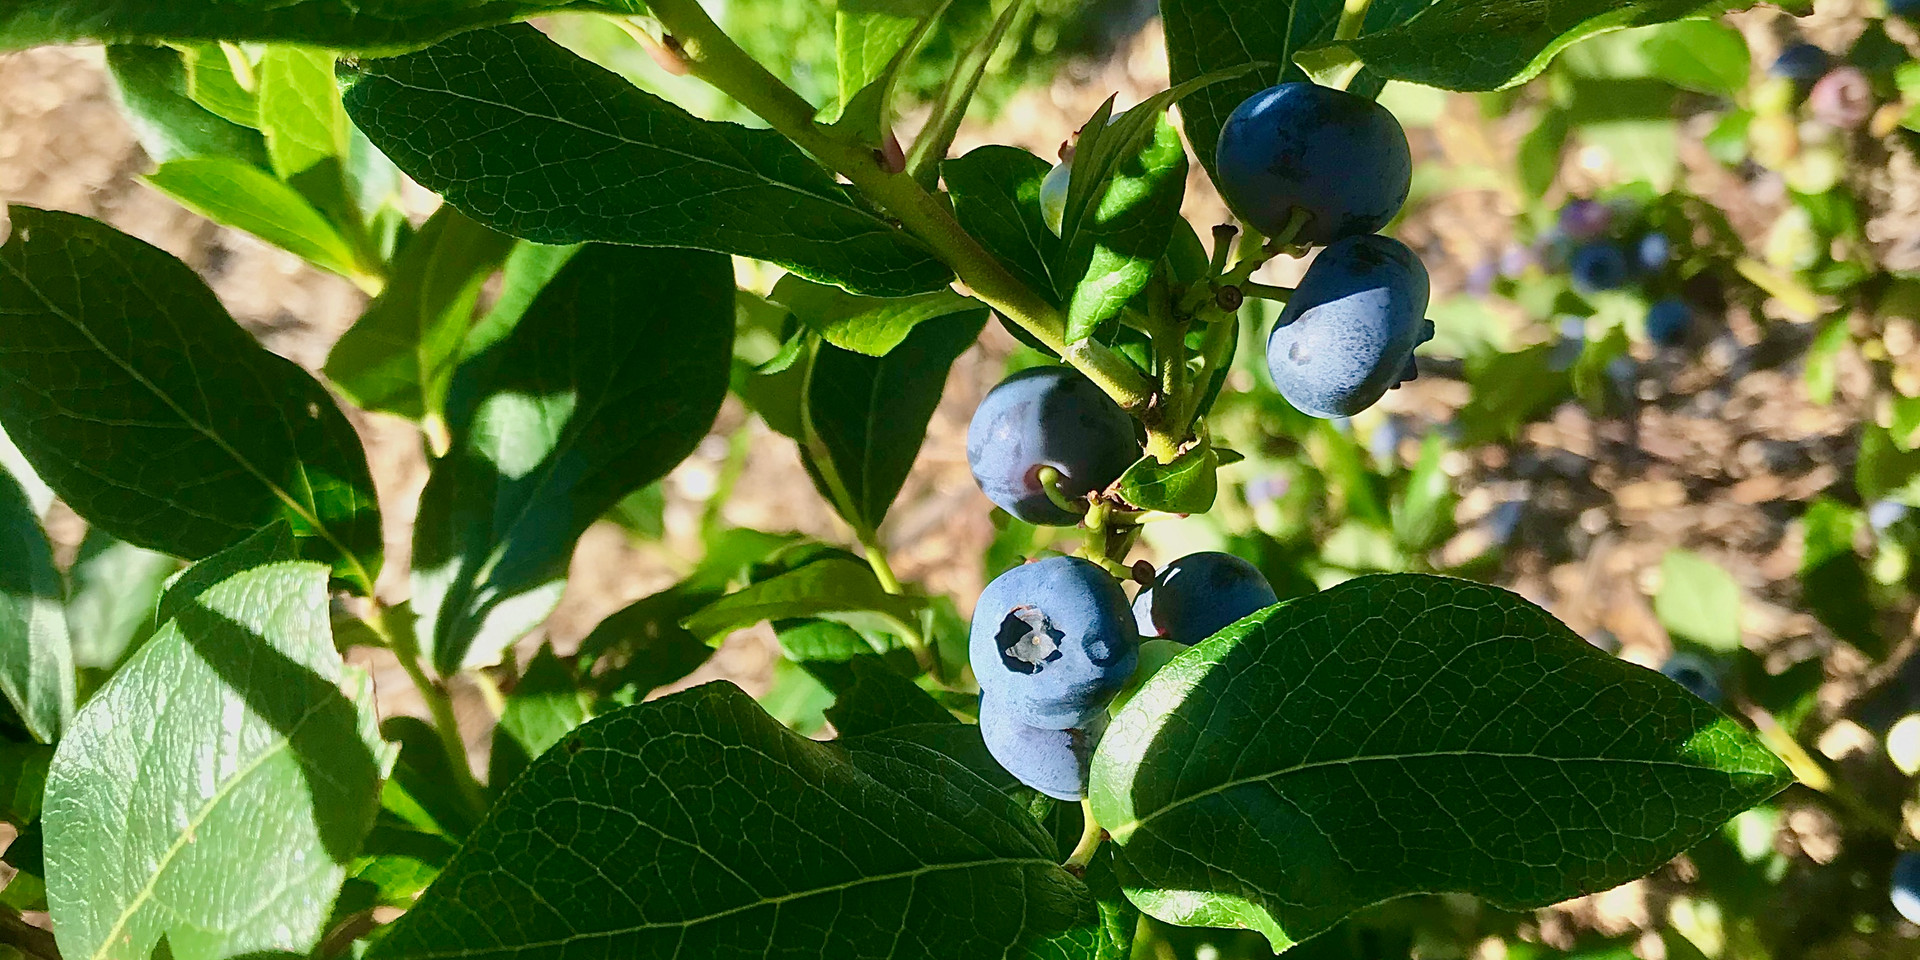 Just one of our blueberry bushes